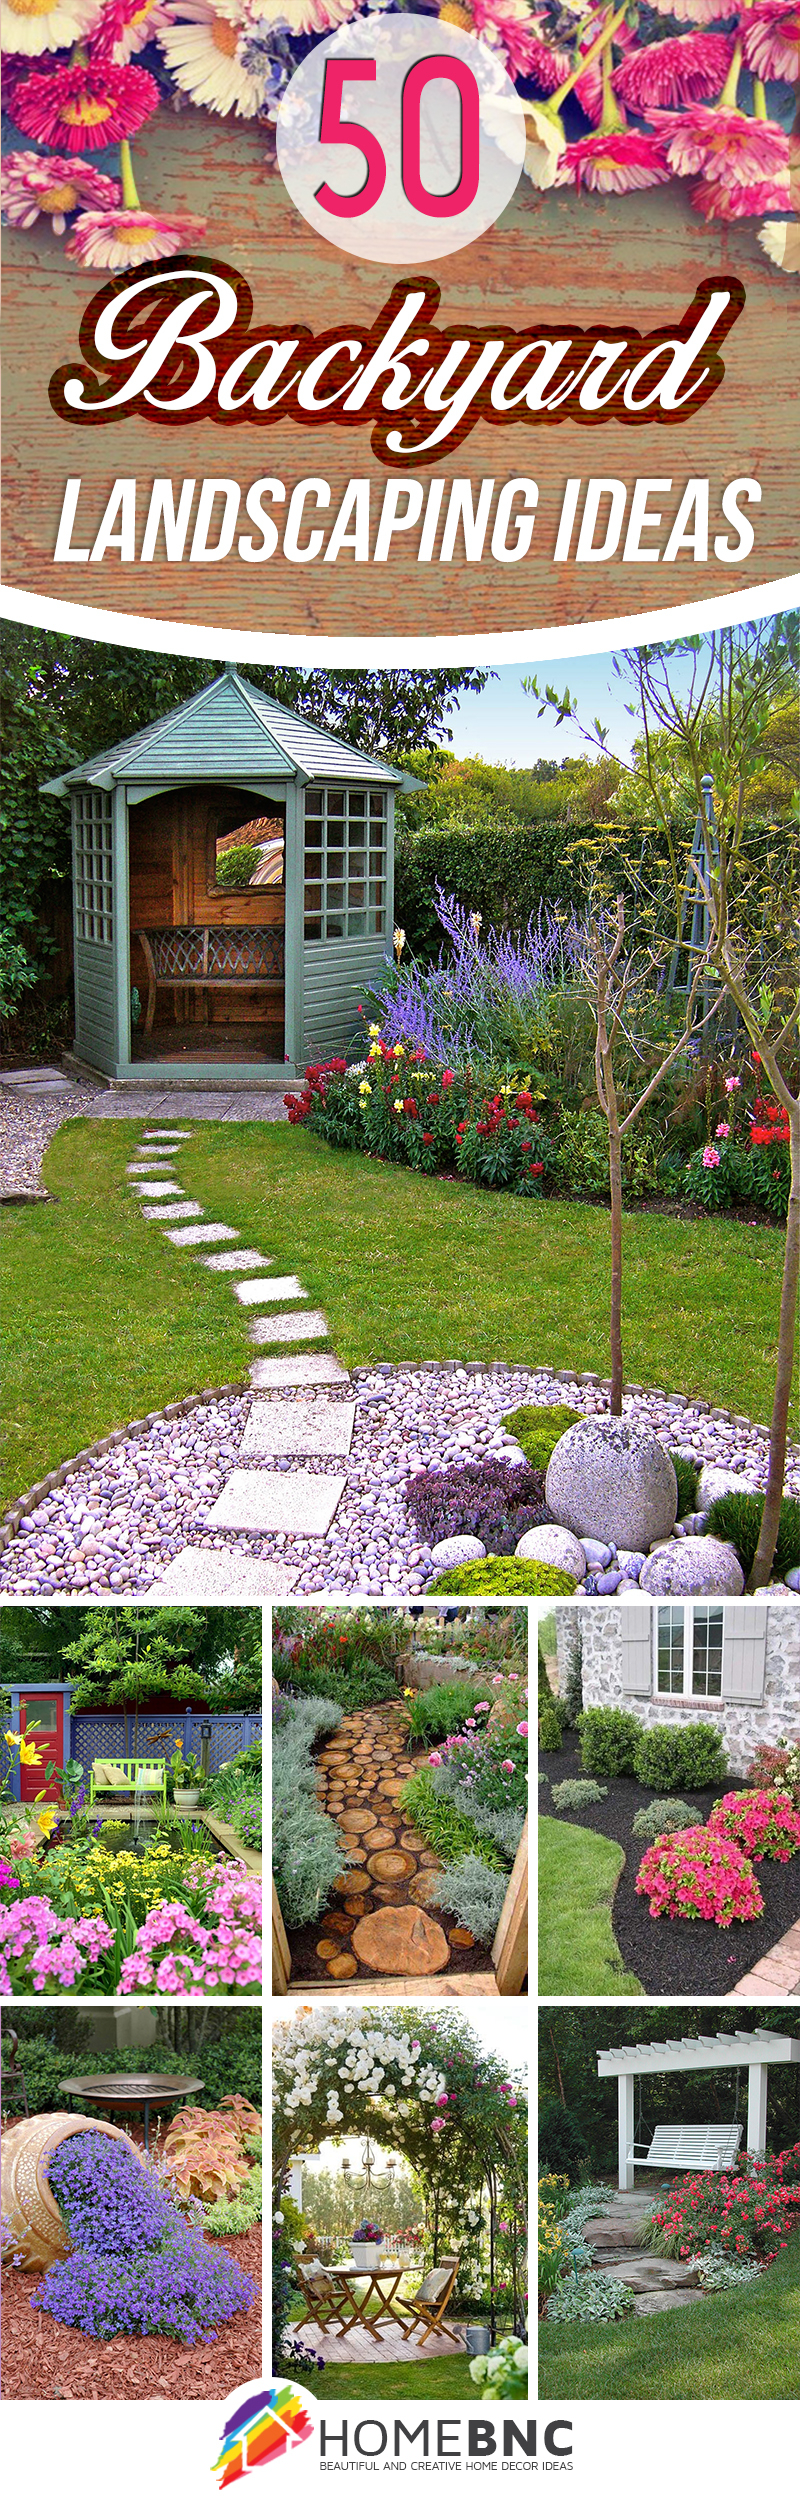 50 Best Backyard Landscaping Ideas And Designs In 2019 within 11 Some of the Coolest Ways How to Improve Backyard Landscaping Design